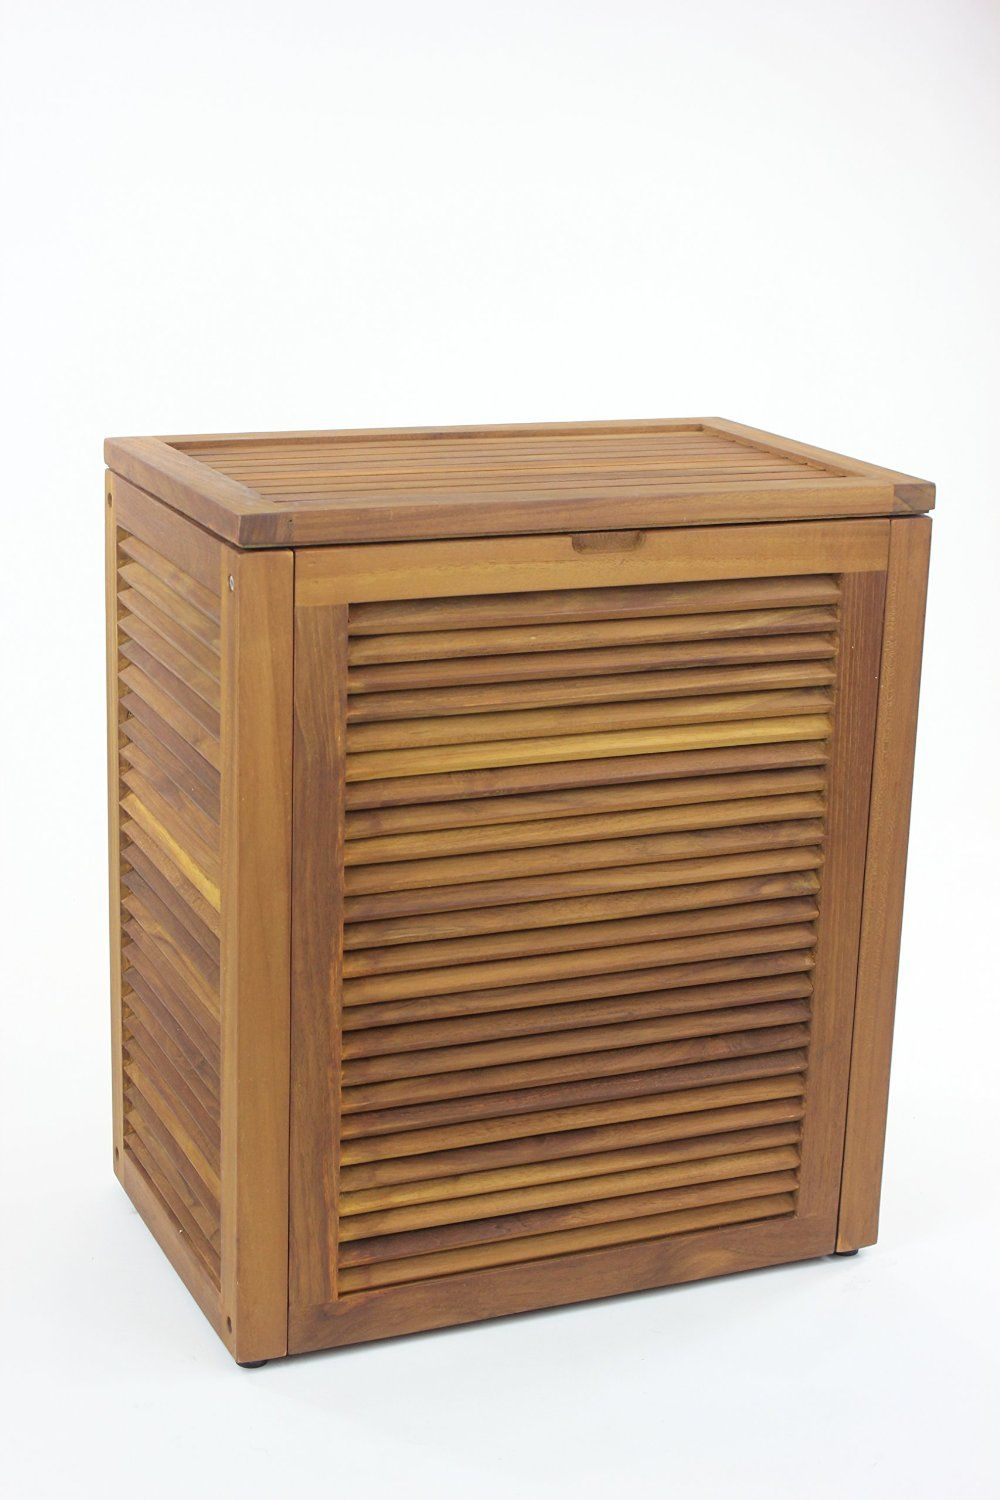 stools bench stool bamboo slotted freestanding and teak pin bathroom